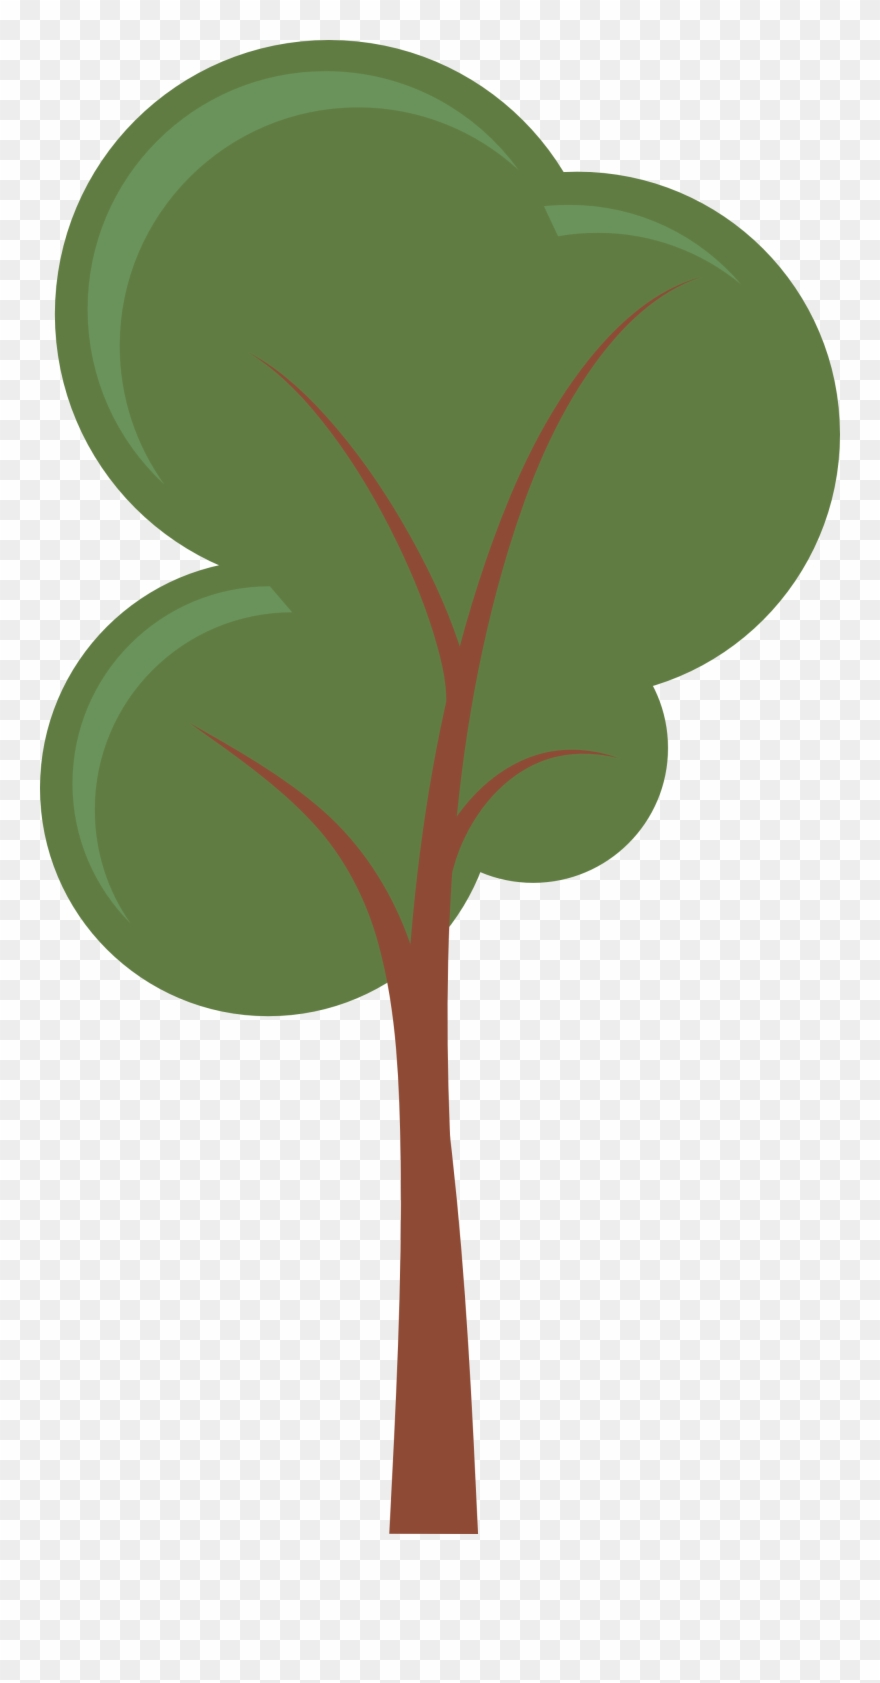 Tree Of Life Clipart At Getdrawings Cartoon Tree Vector Png Transparent Png 279425 Pinclipart Our cartoon tree is cute, friendly and will definitely grab the attention of your audience. cartoon tree vector png transparent png